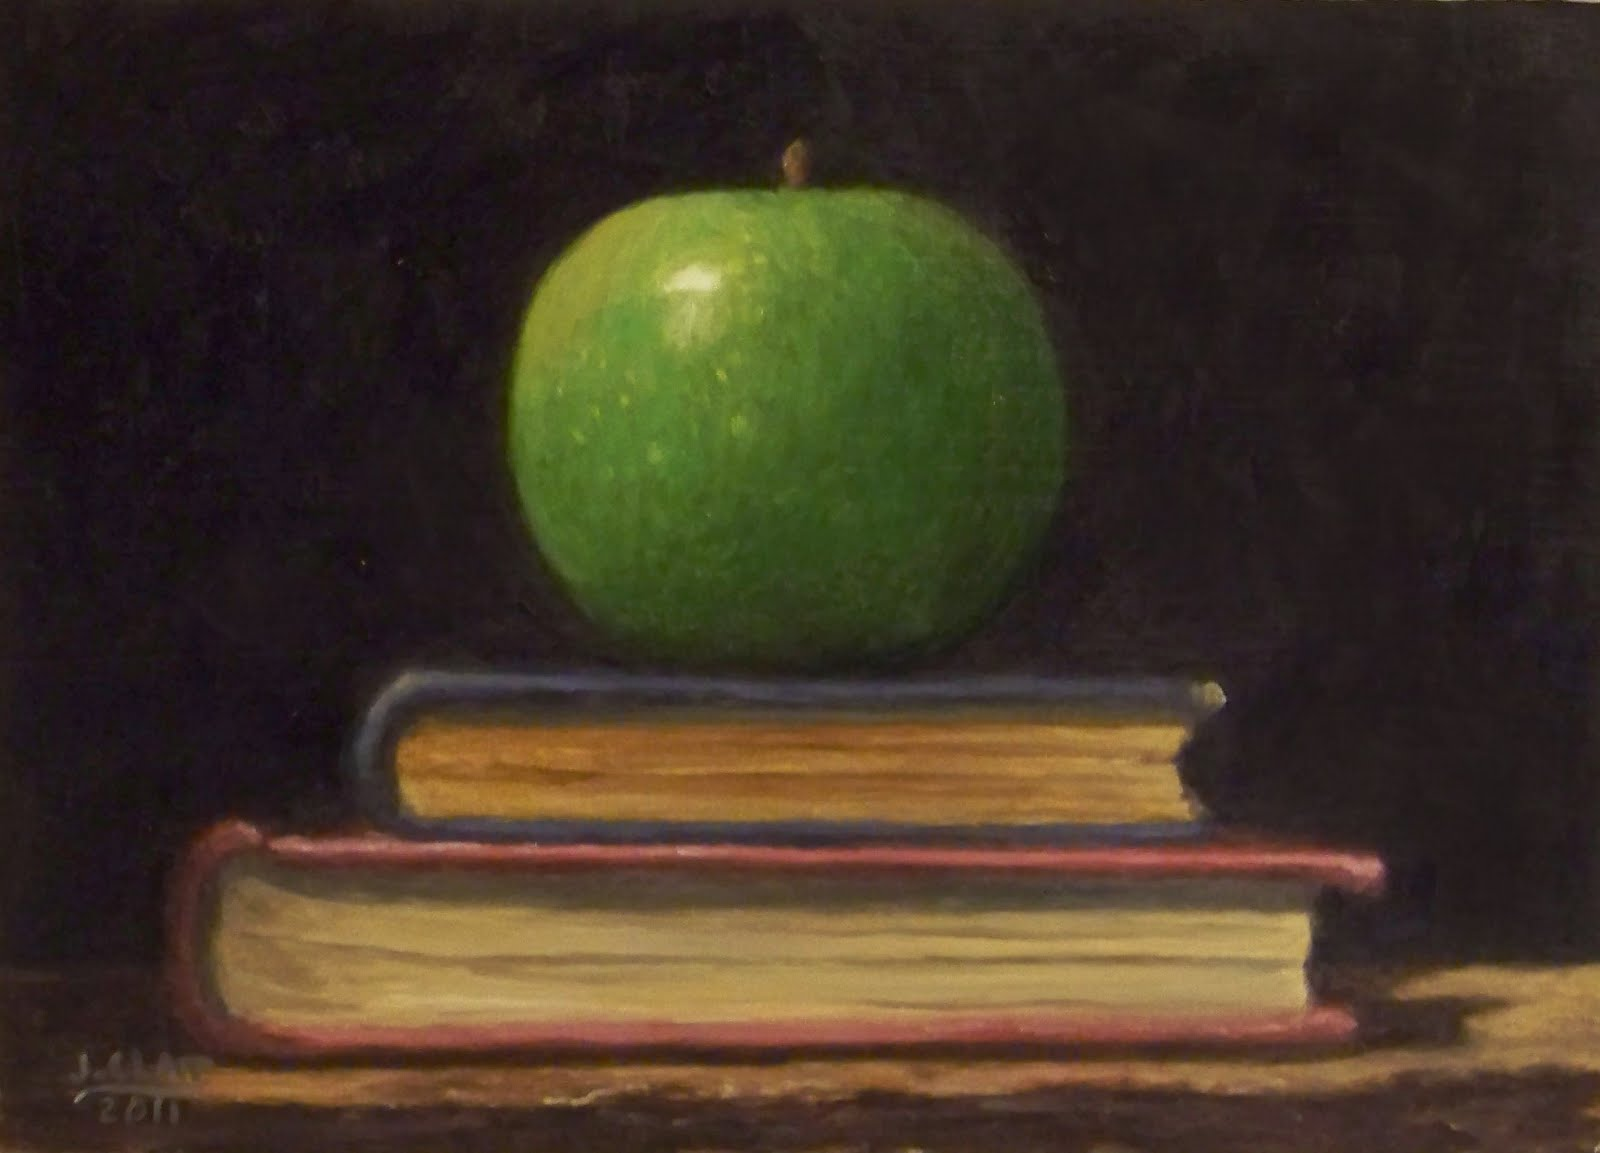 Green Apple on antique books